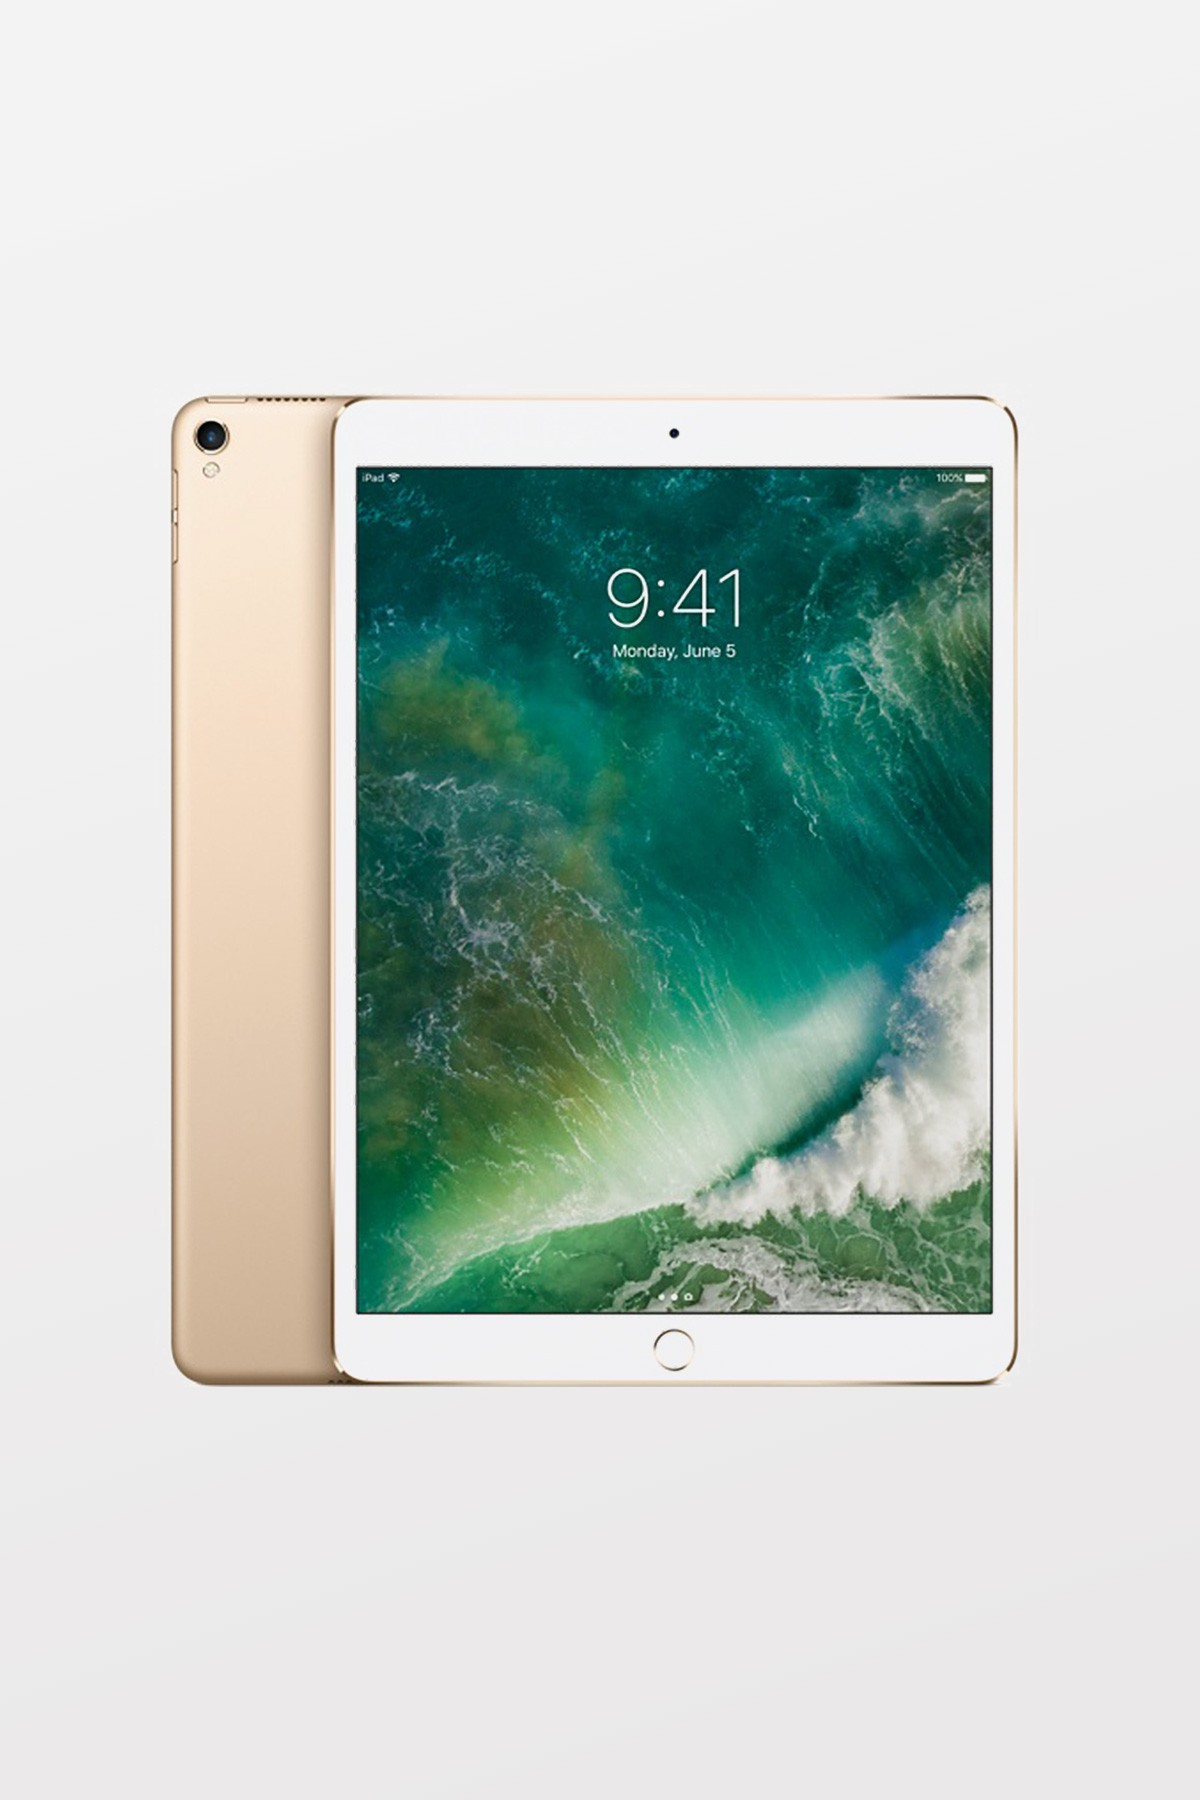 Apple iPad Pro 10.5-inch Wi-Fi + Cellular 64GB - Gold